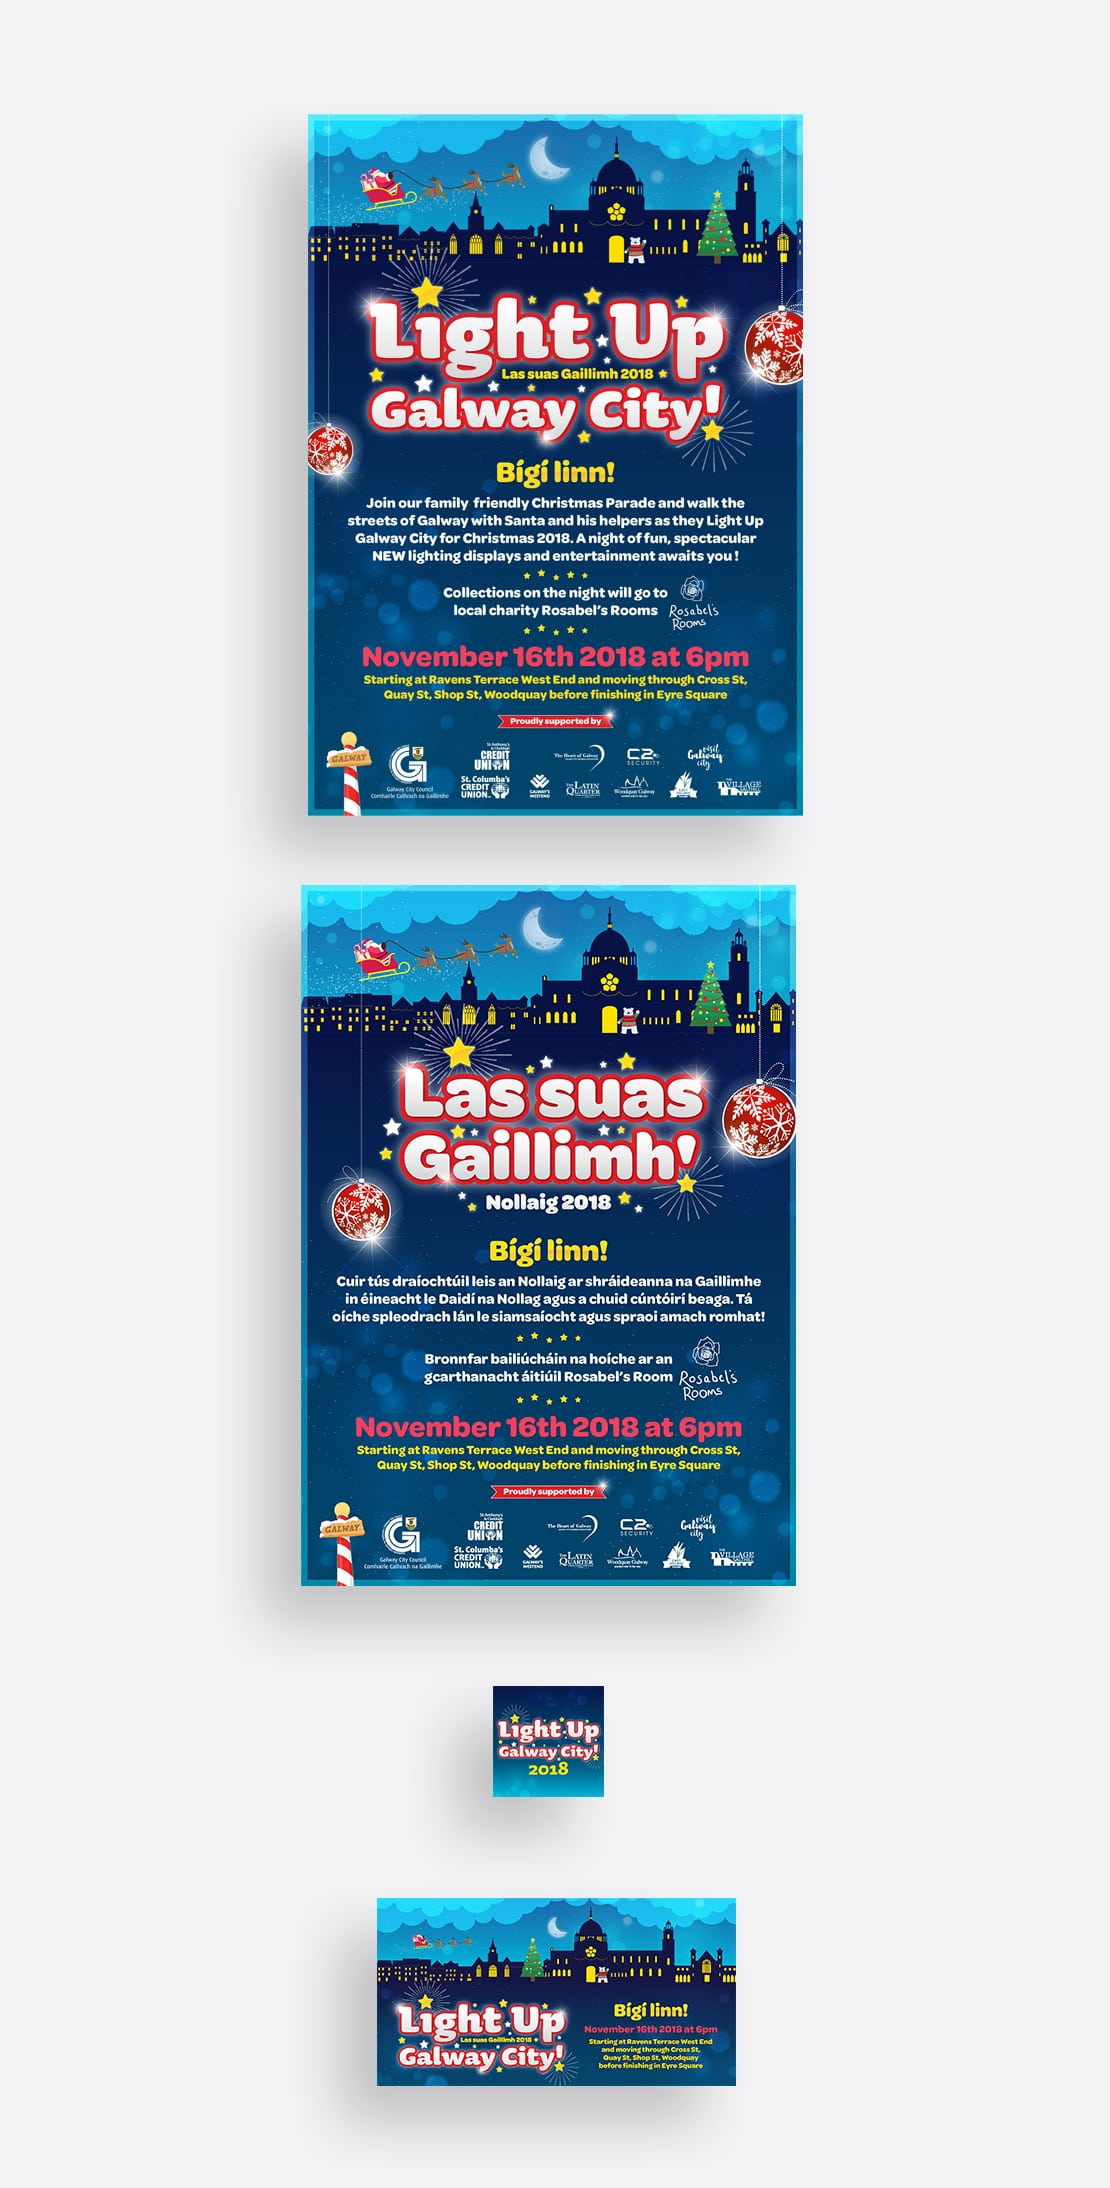 'Light Up Galway' posters and social media graphics